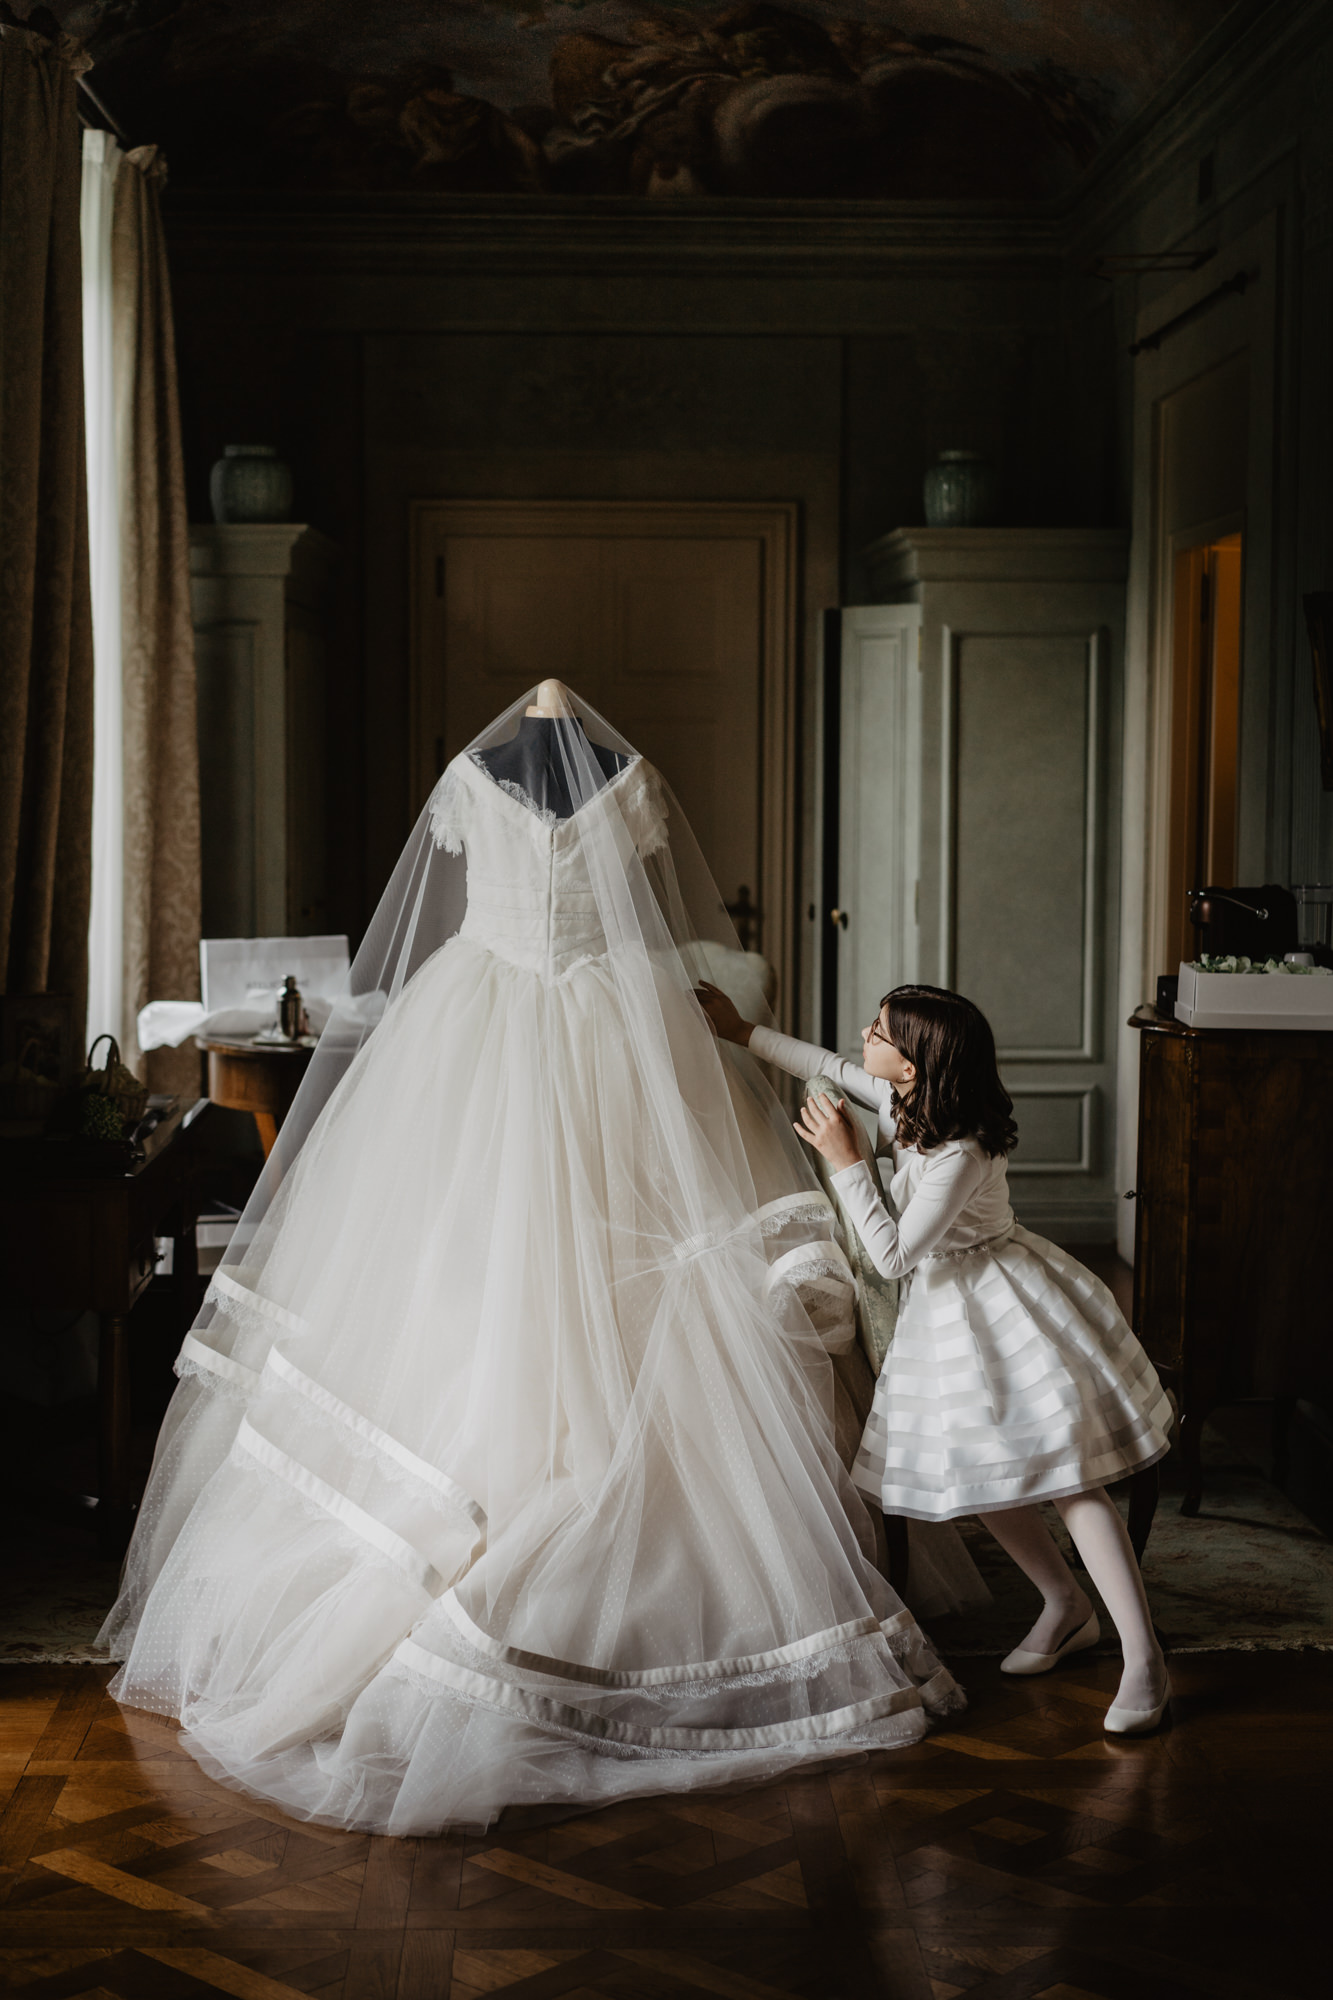 Child touching wedding gown photo by David Bastianoni